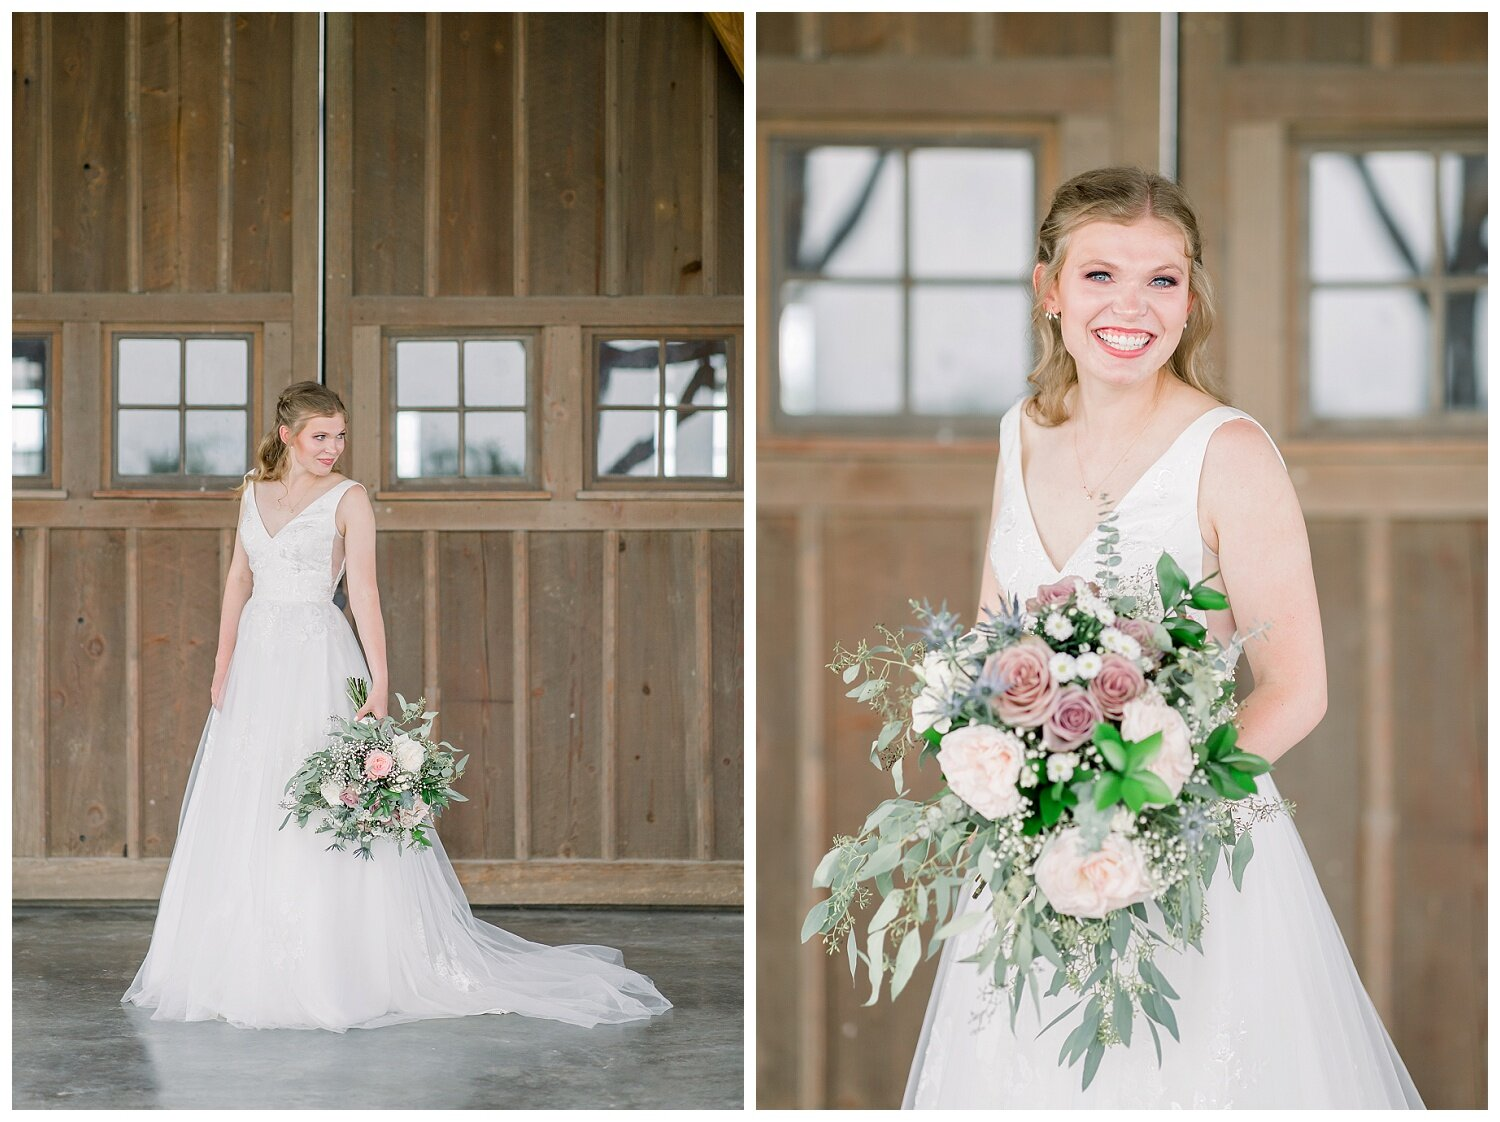 Weston-Red-Barn-Farm-Timber-Barn-Wedding-S+Z-0811-Elizabeth-Ladean-Photography_photo-_9698.jpg